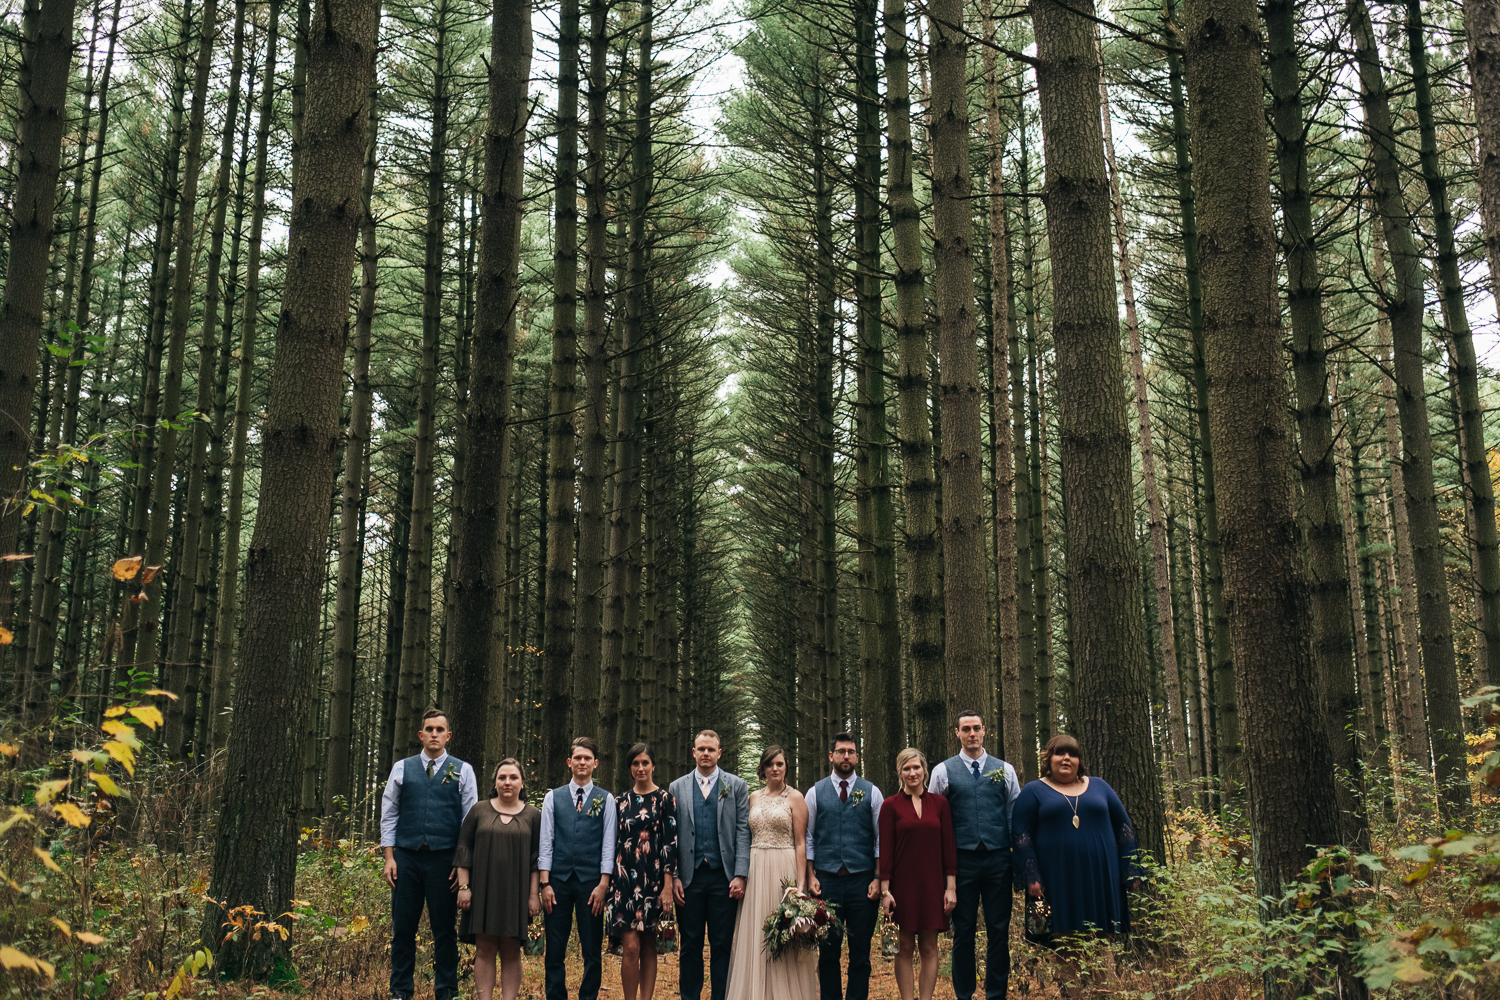 Bridal party lines up near tall oak and pine trees at Oak Openings park